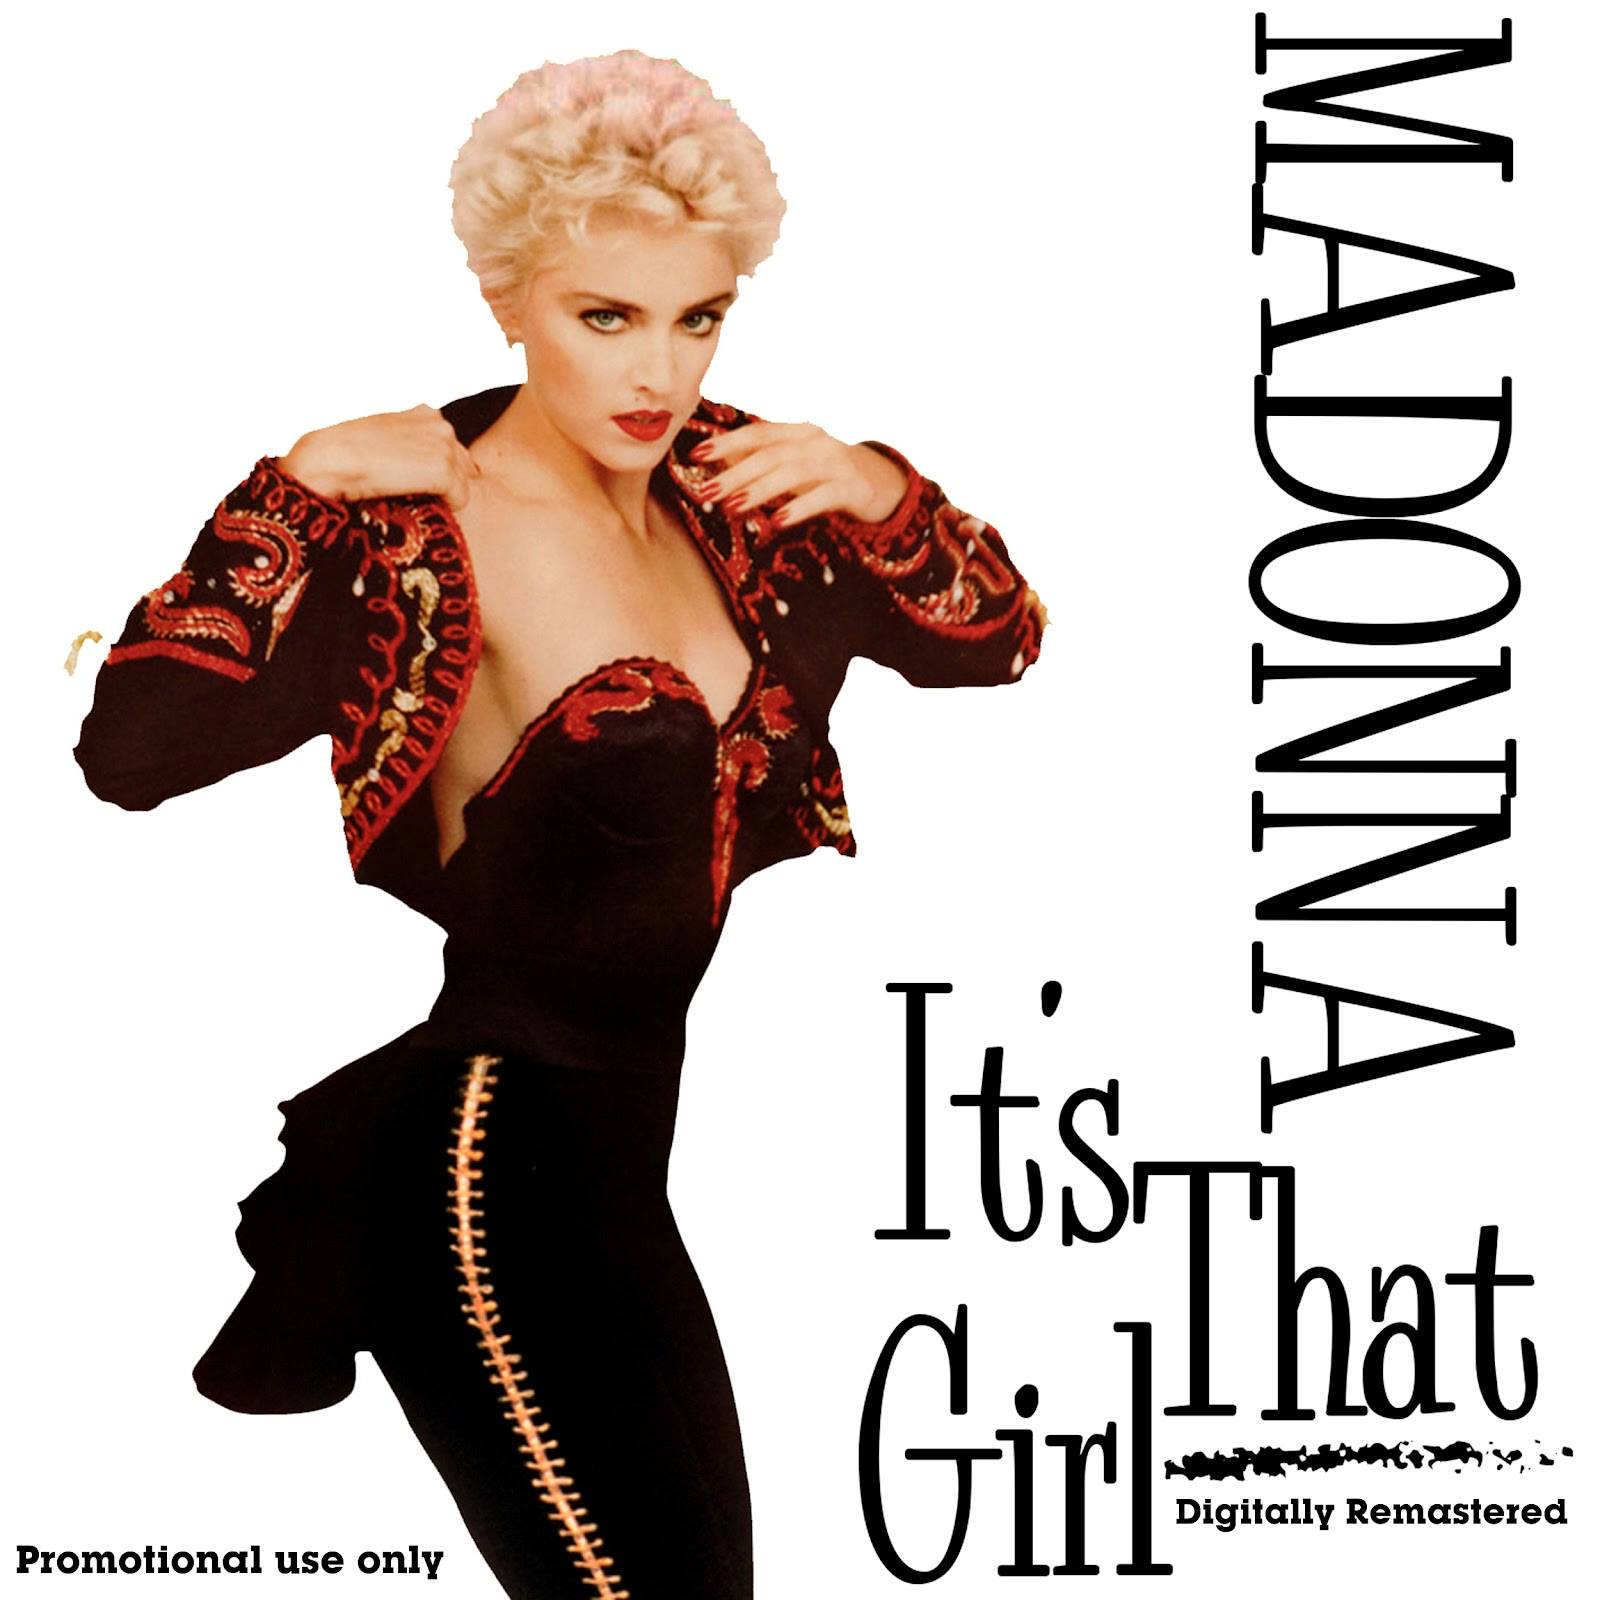 madonna - it's that girl promo CD